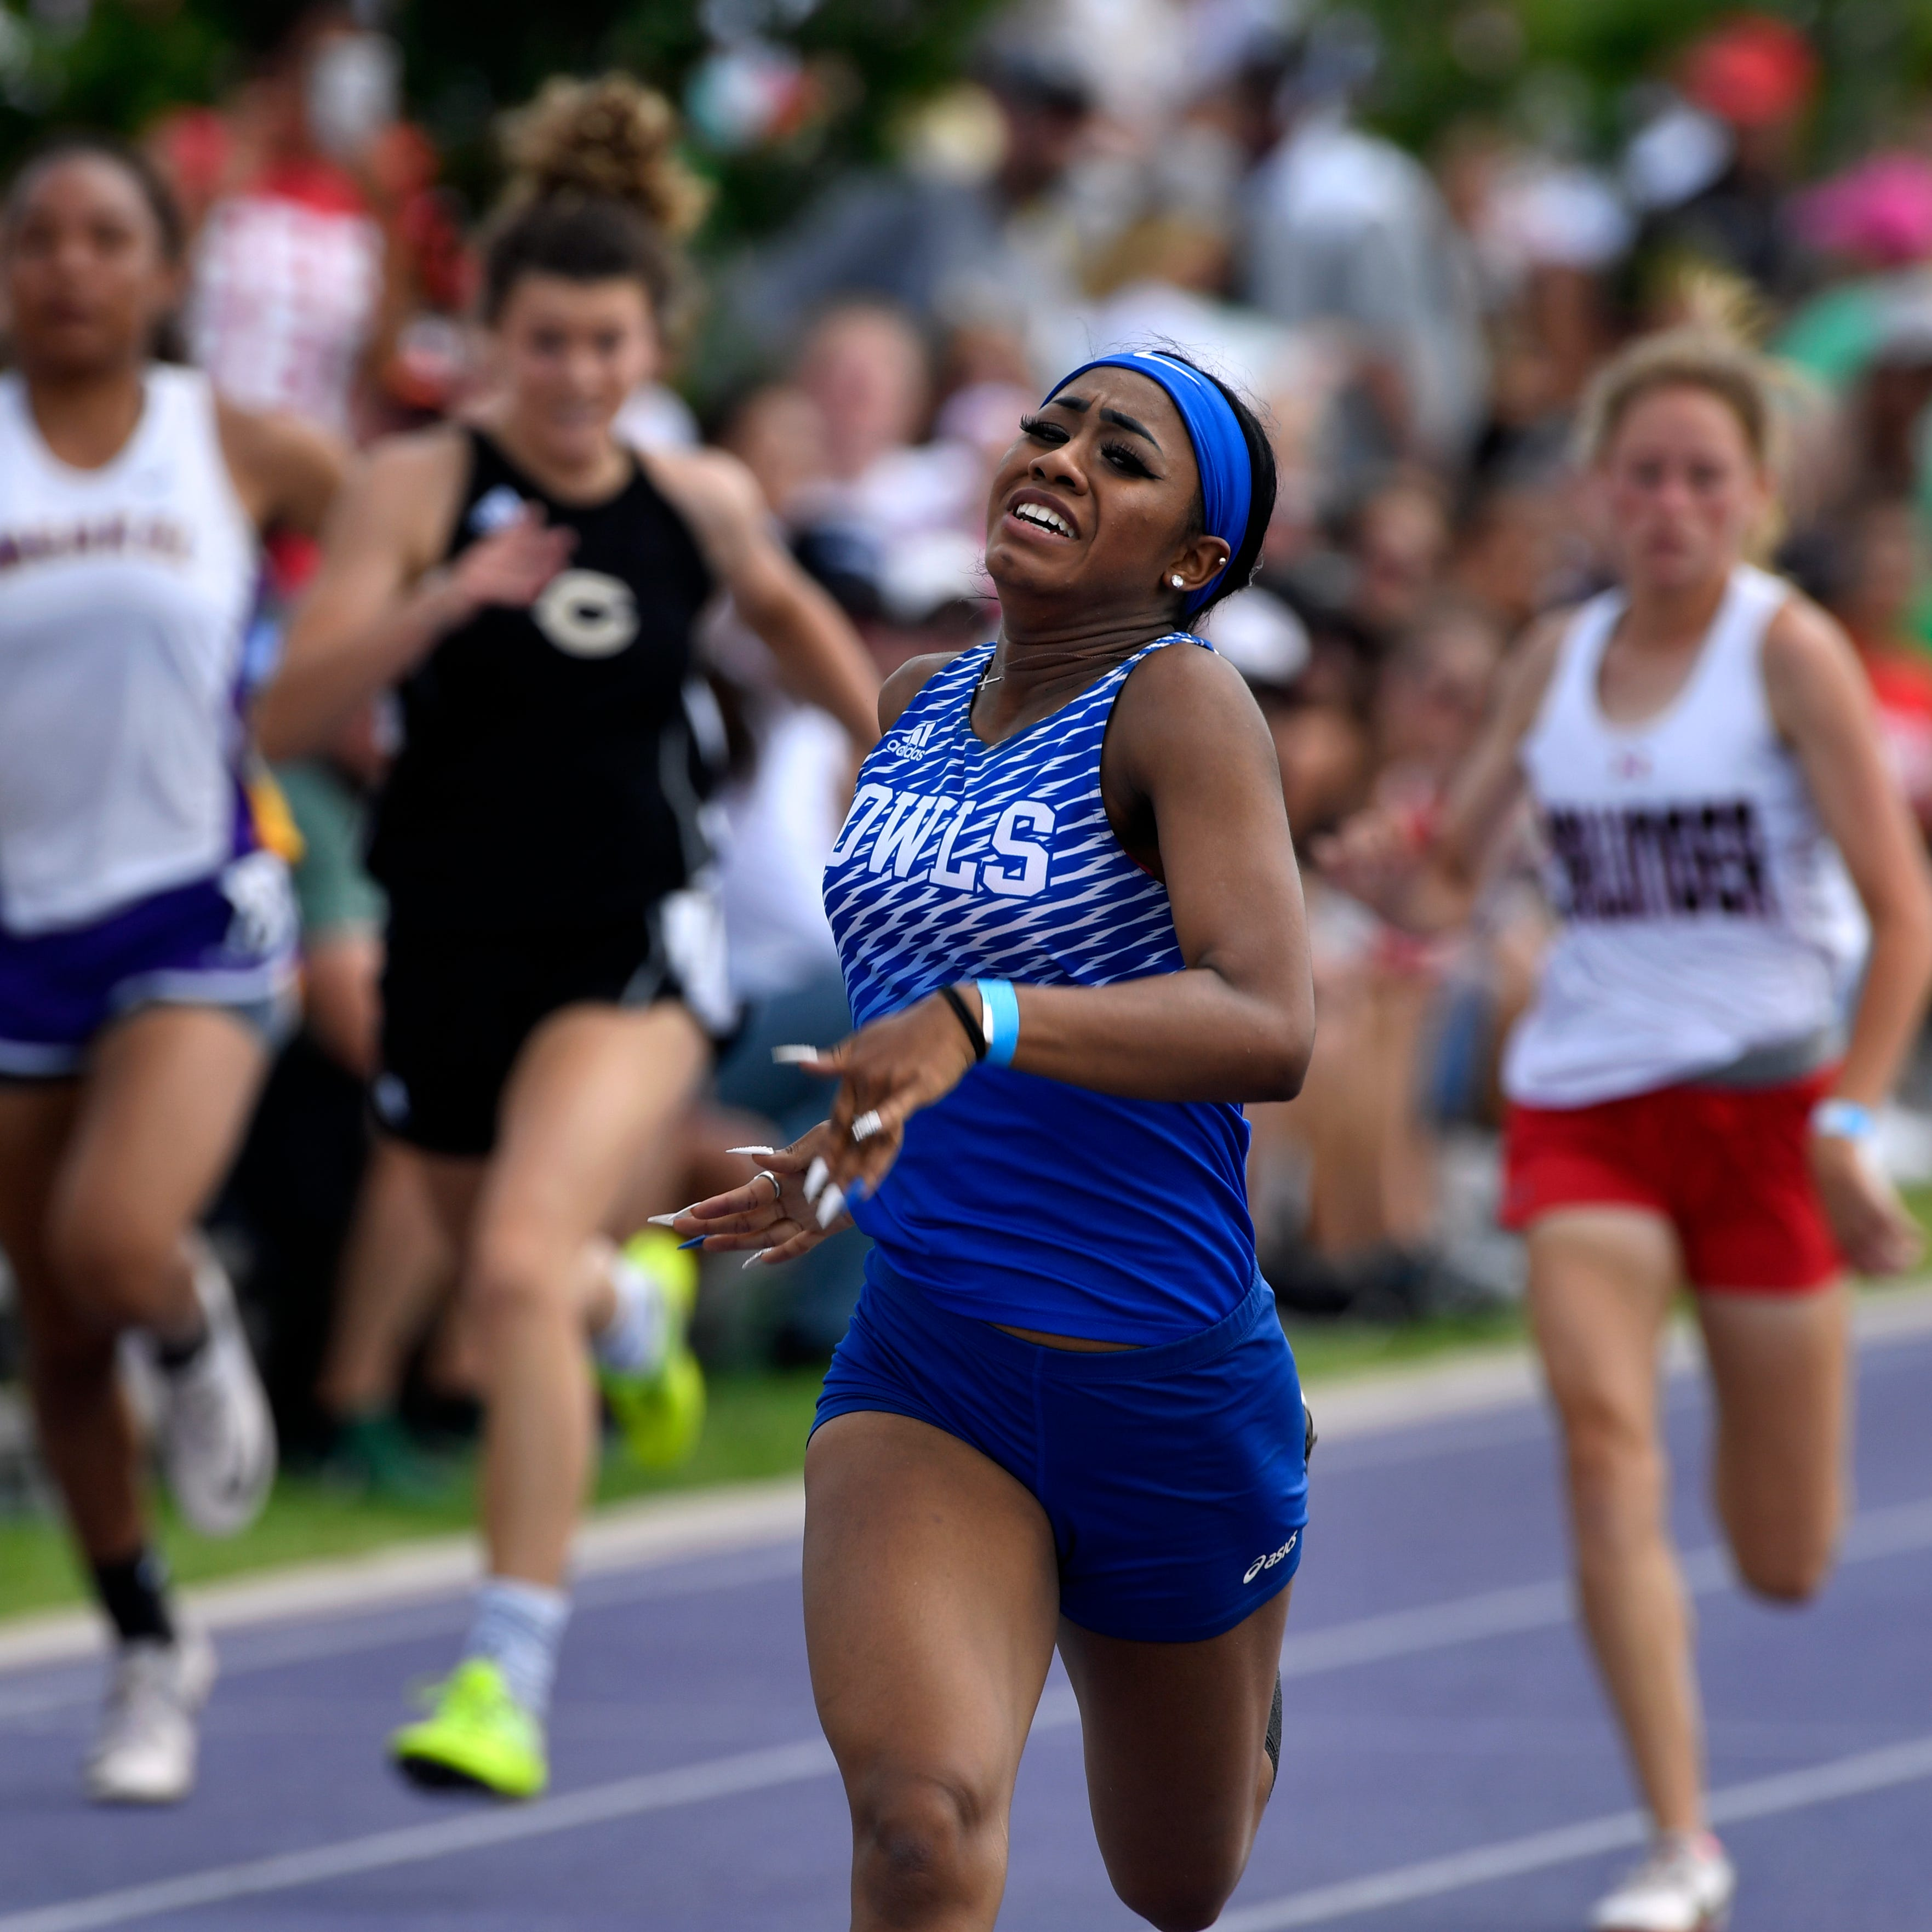 This West Texas runner is chasing down her aunt's records, and busting them